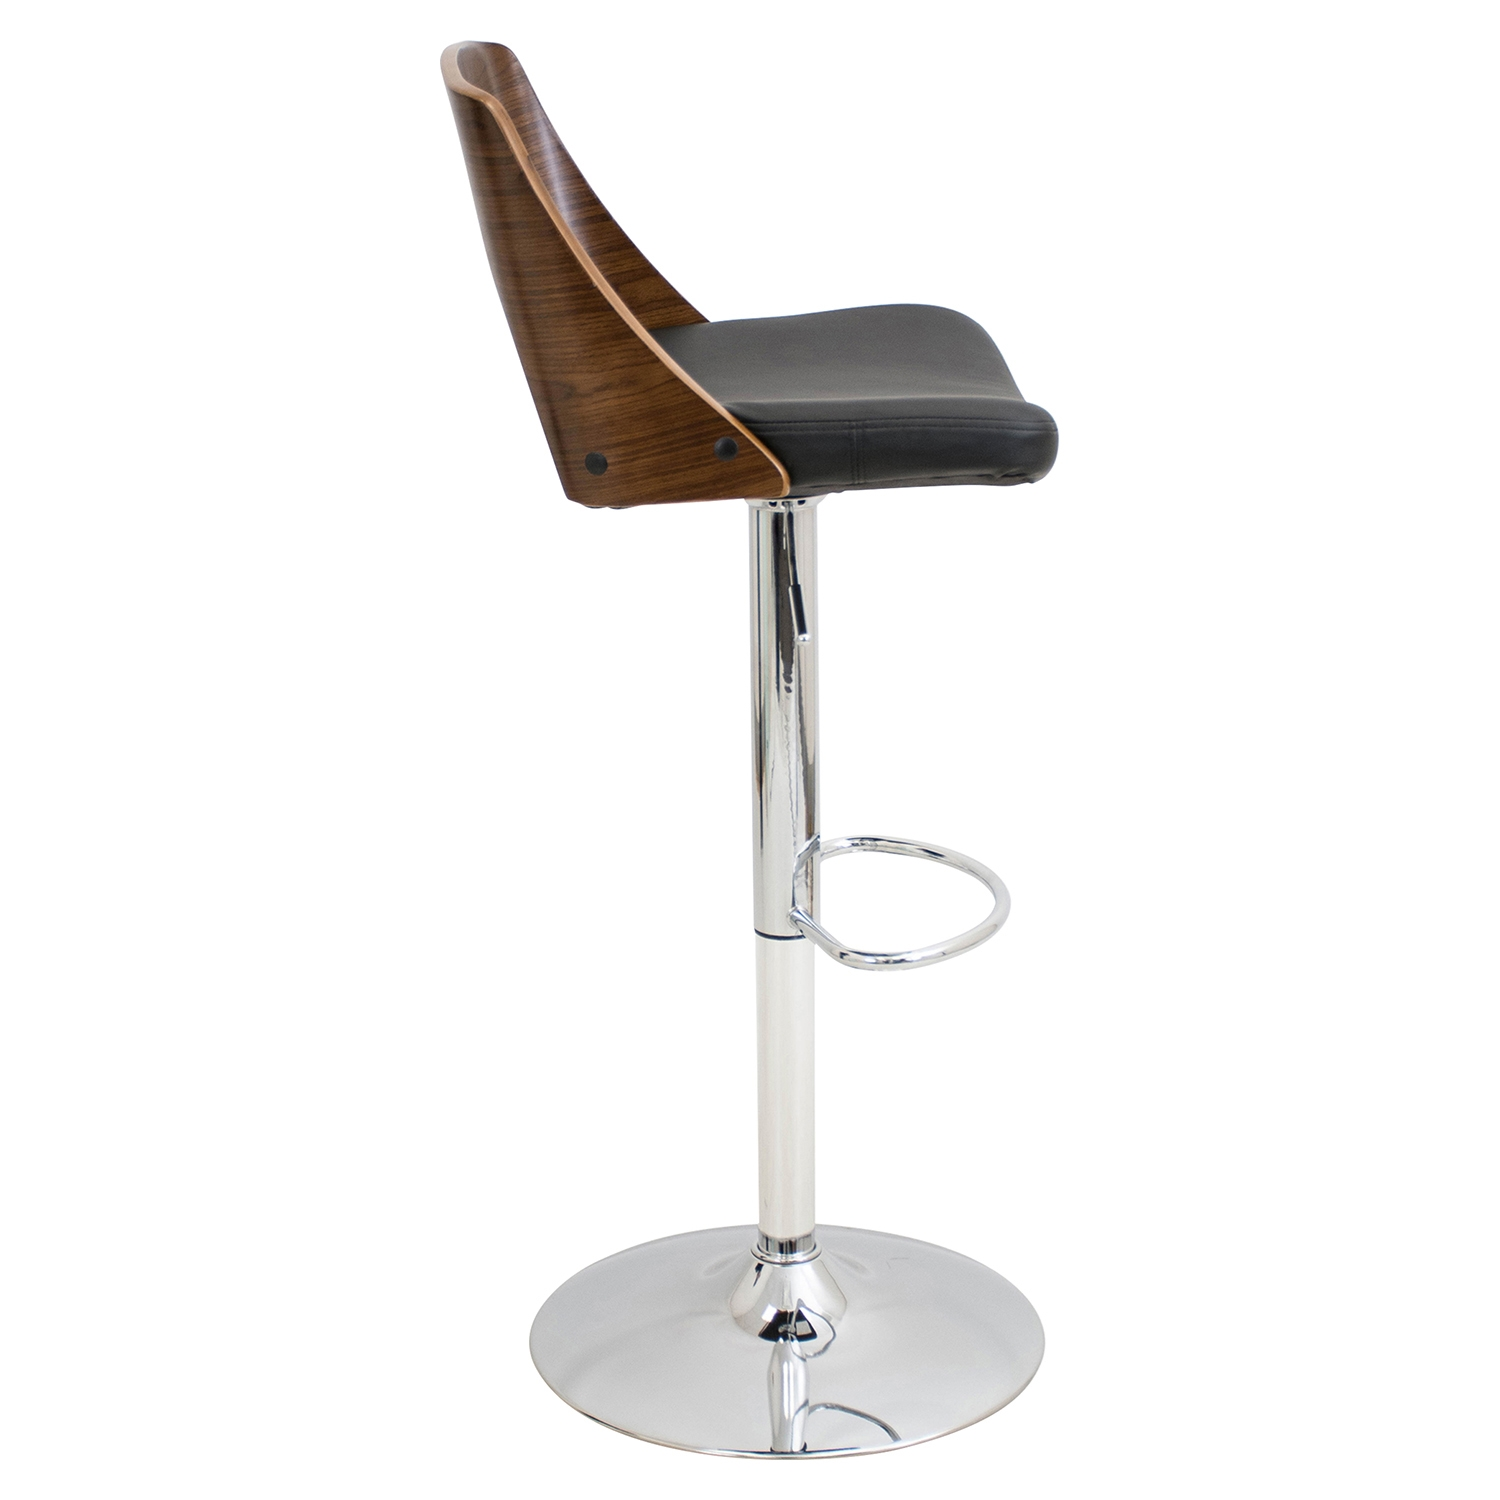 Valencia Height Adjustable Barstool - Swivel, Walnut, Black - LMS-BS-VLNCI-WL-BK